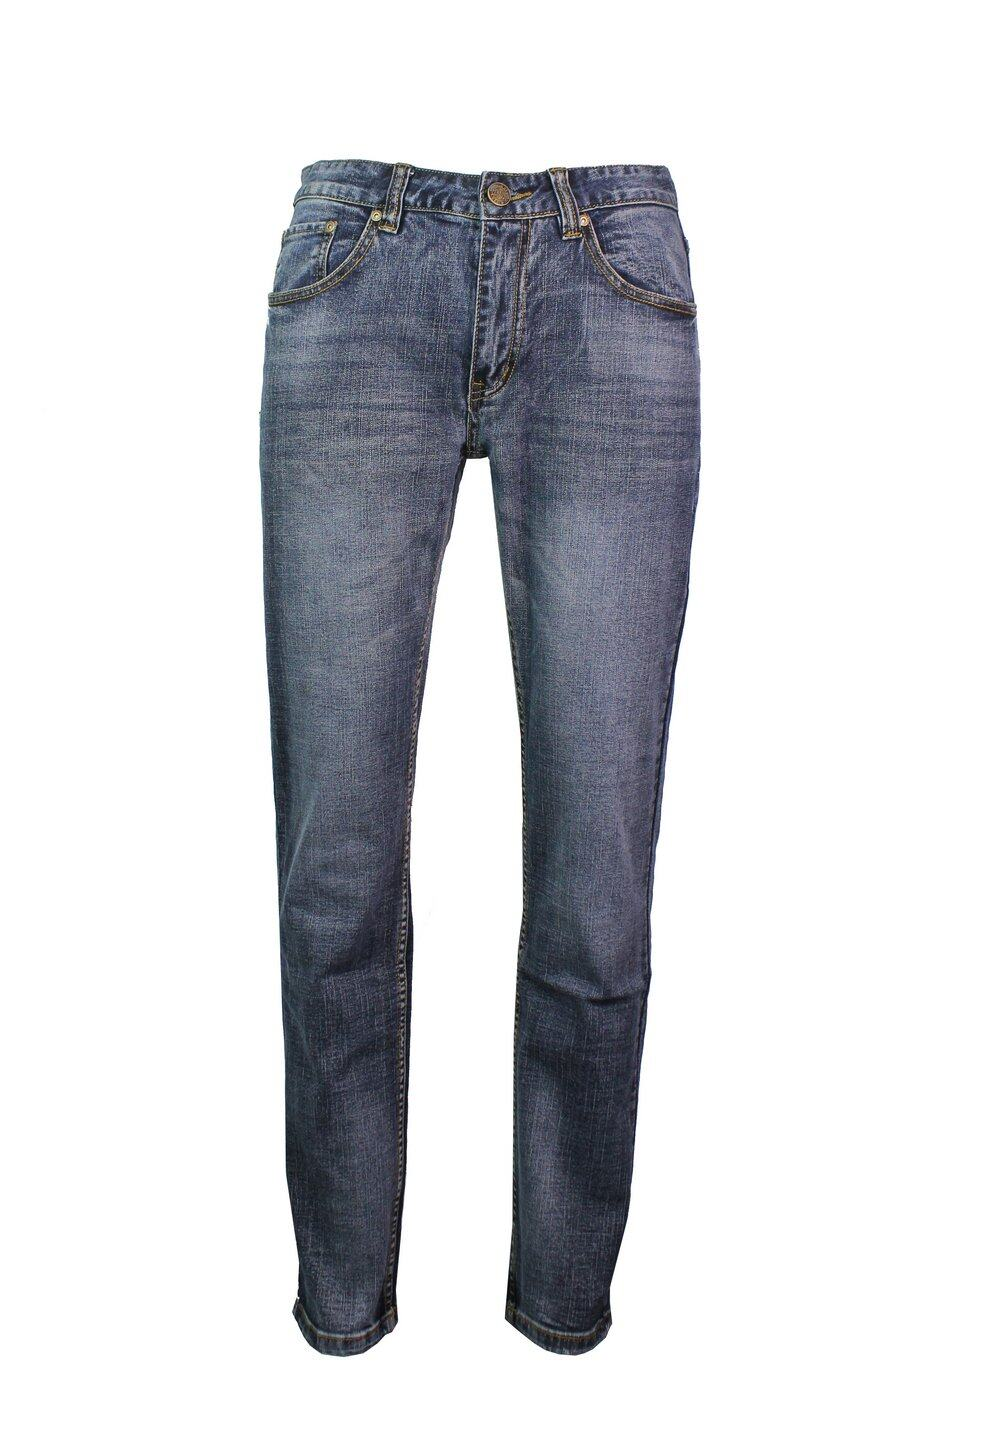 Exhaust Stretch Skinny Fit Jeans 993